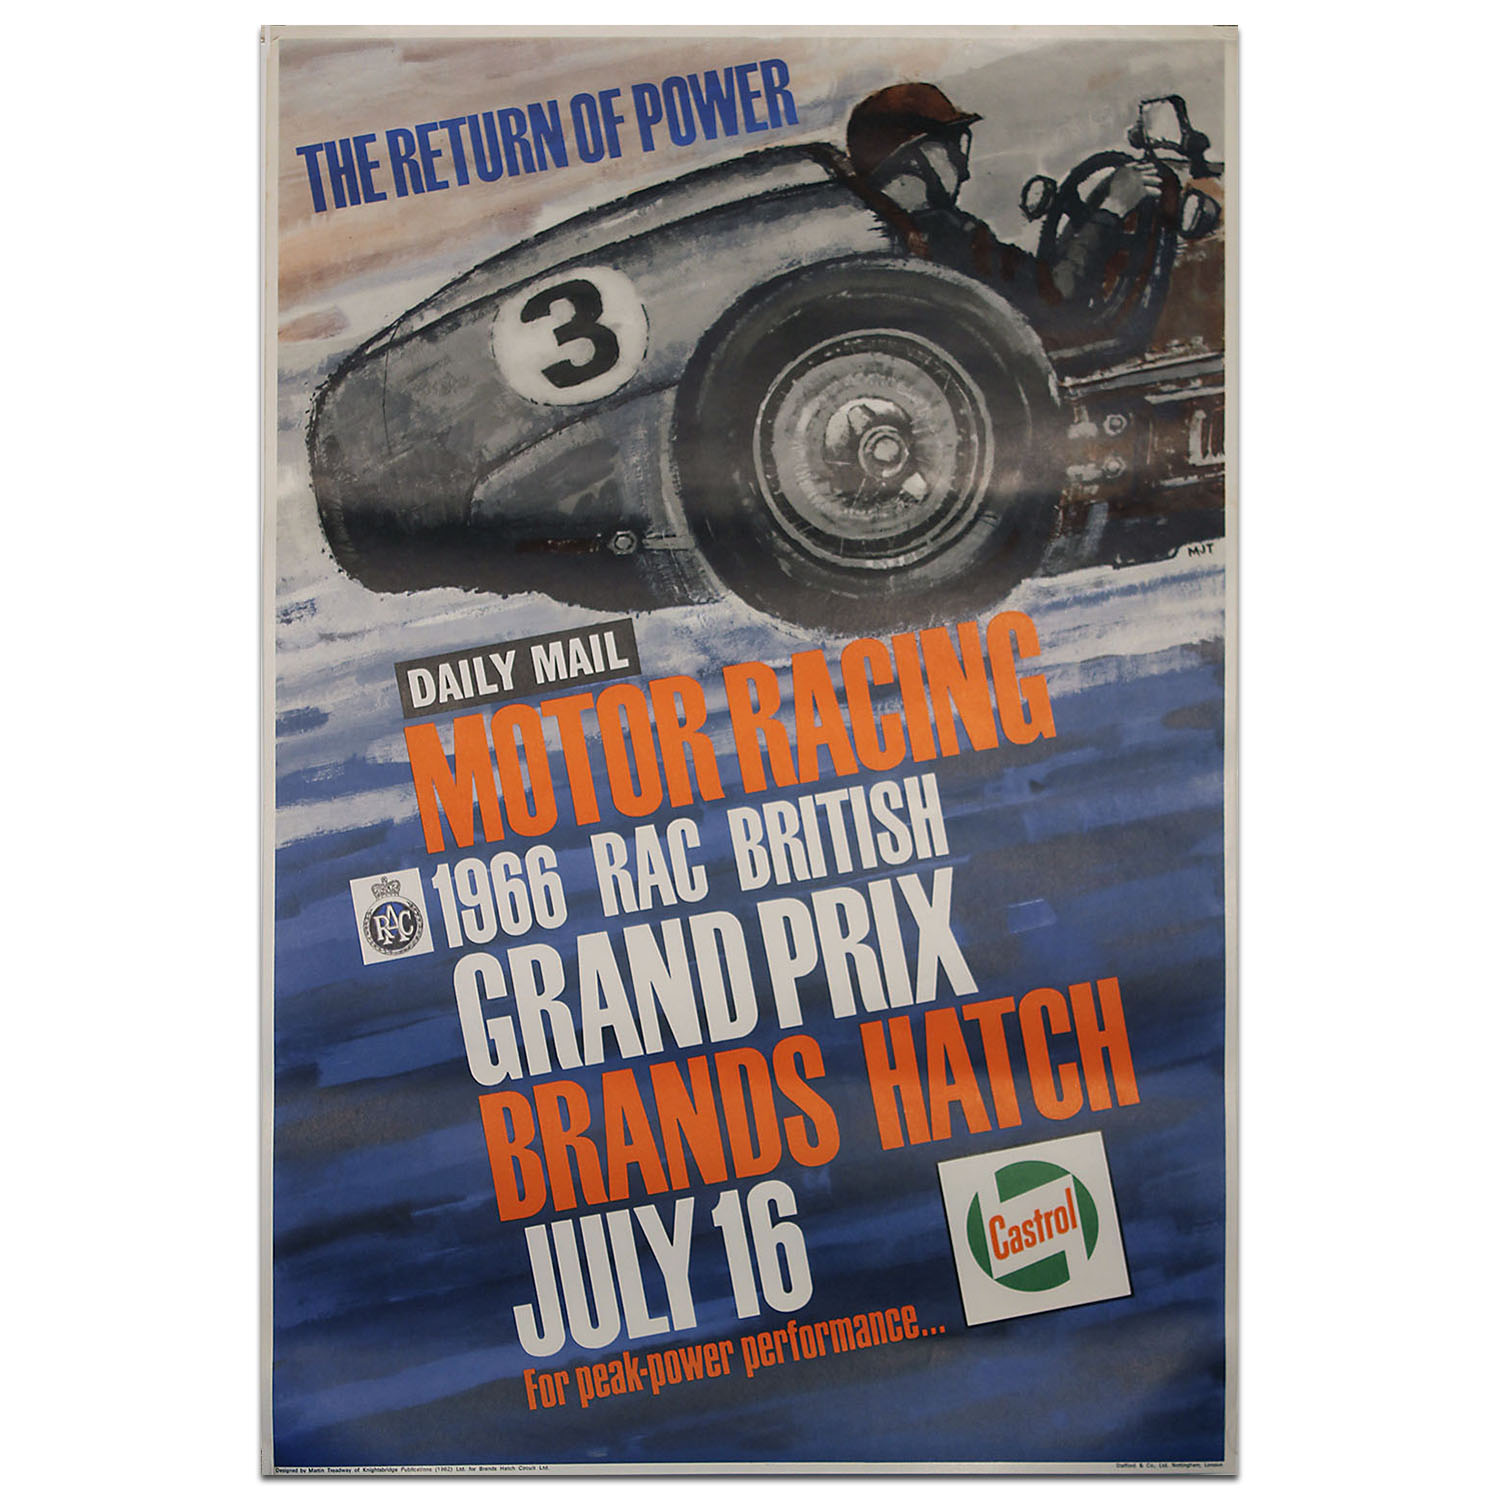 Product image for British Grand Prix 1966 Brands Hatch Poster